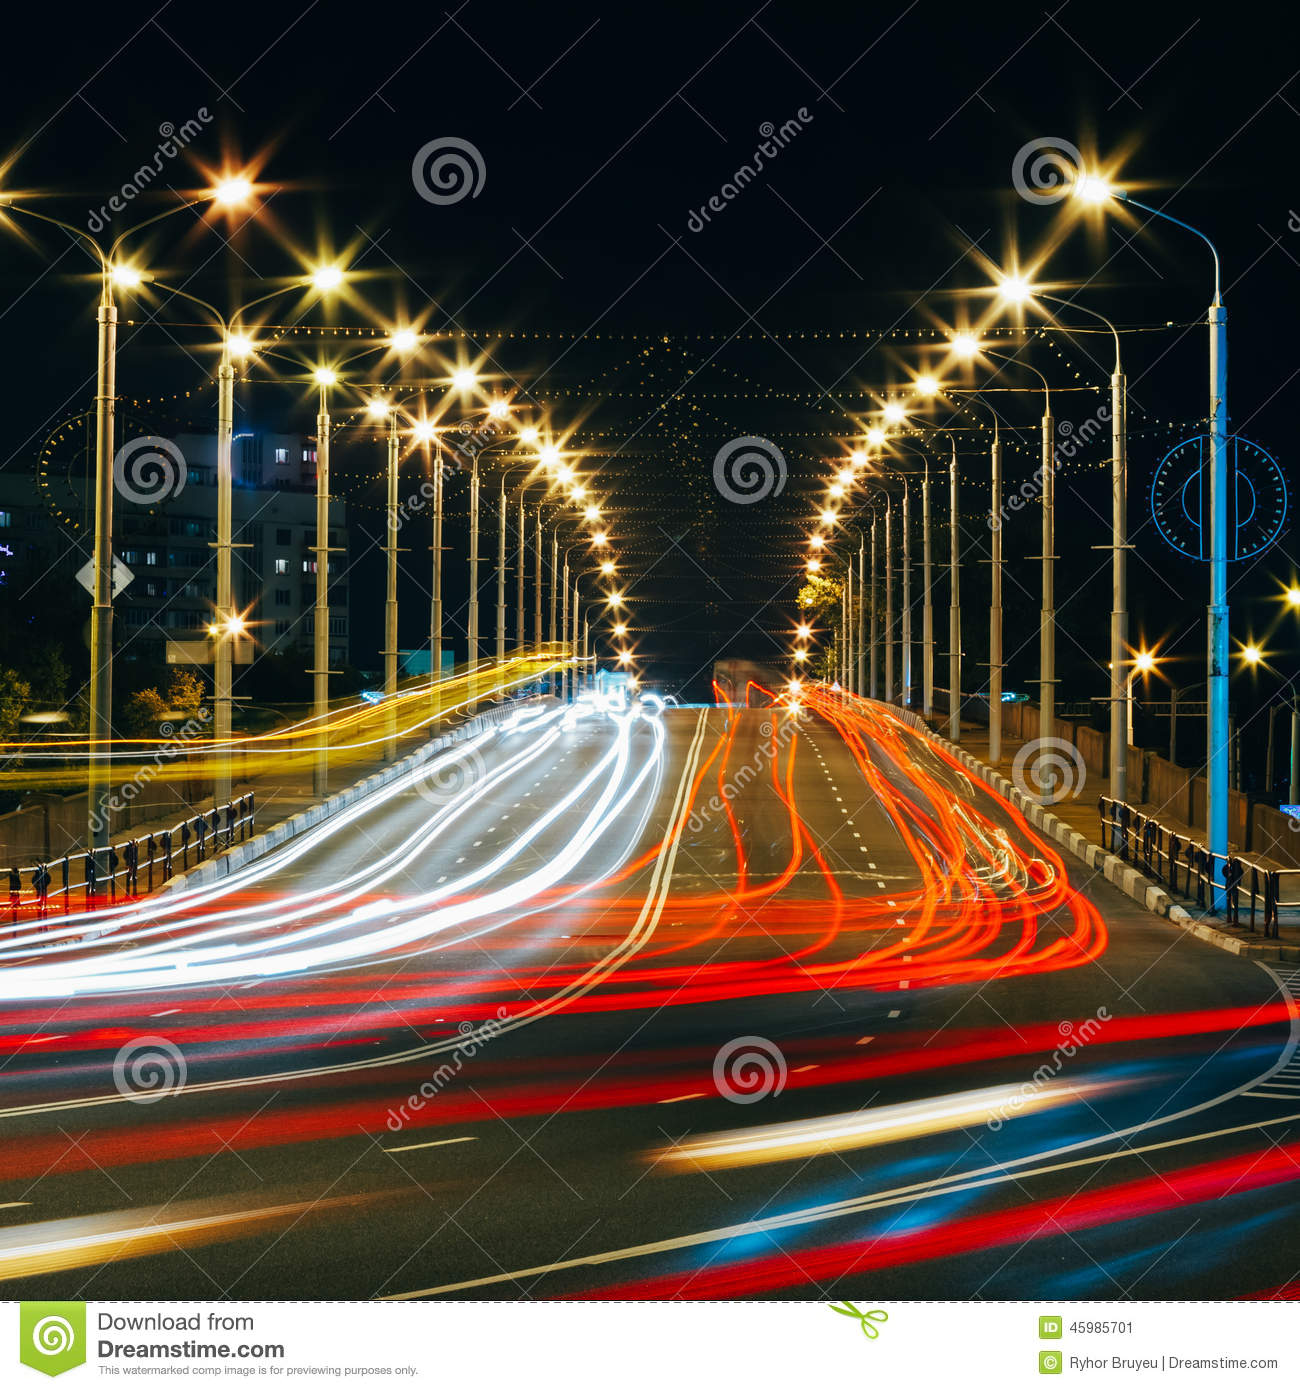 Speed Traffic - Light Trails On City Road At Night Stock Image ... for Traffic Light On Road At Night  45jwn